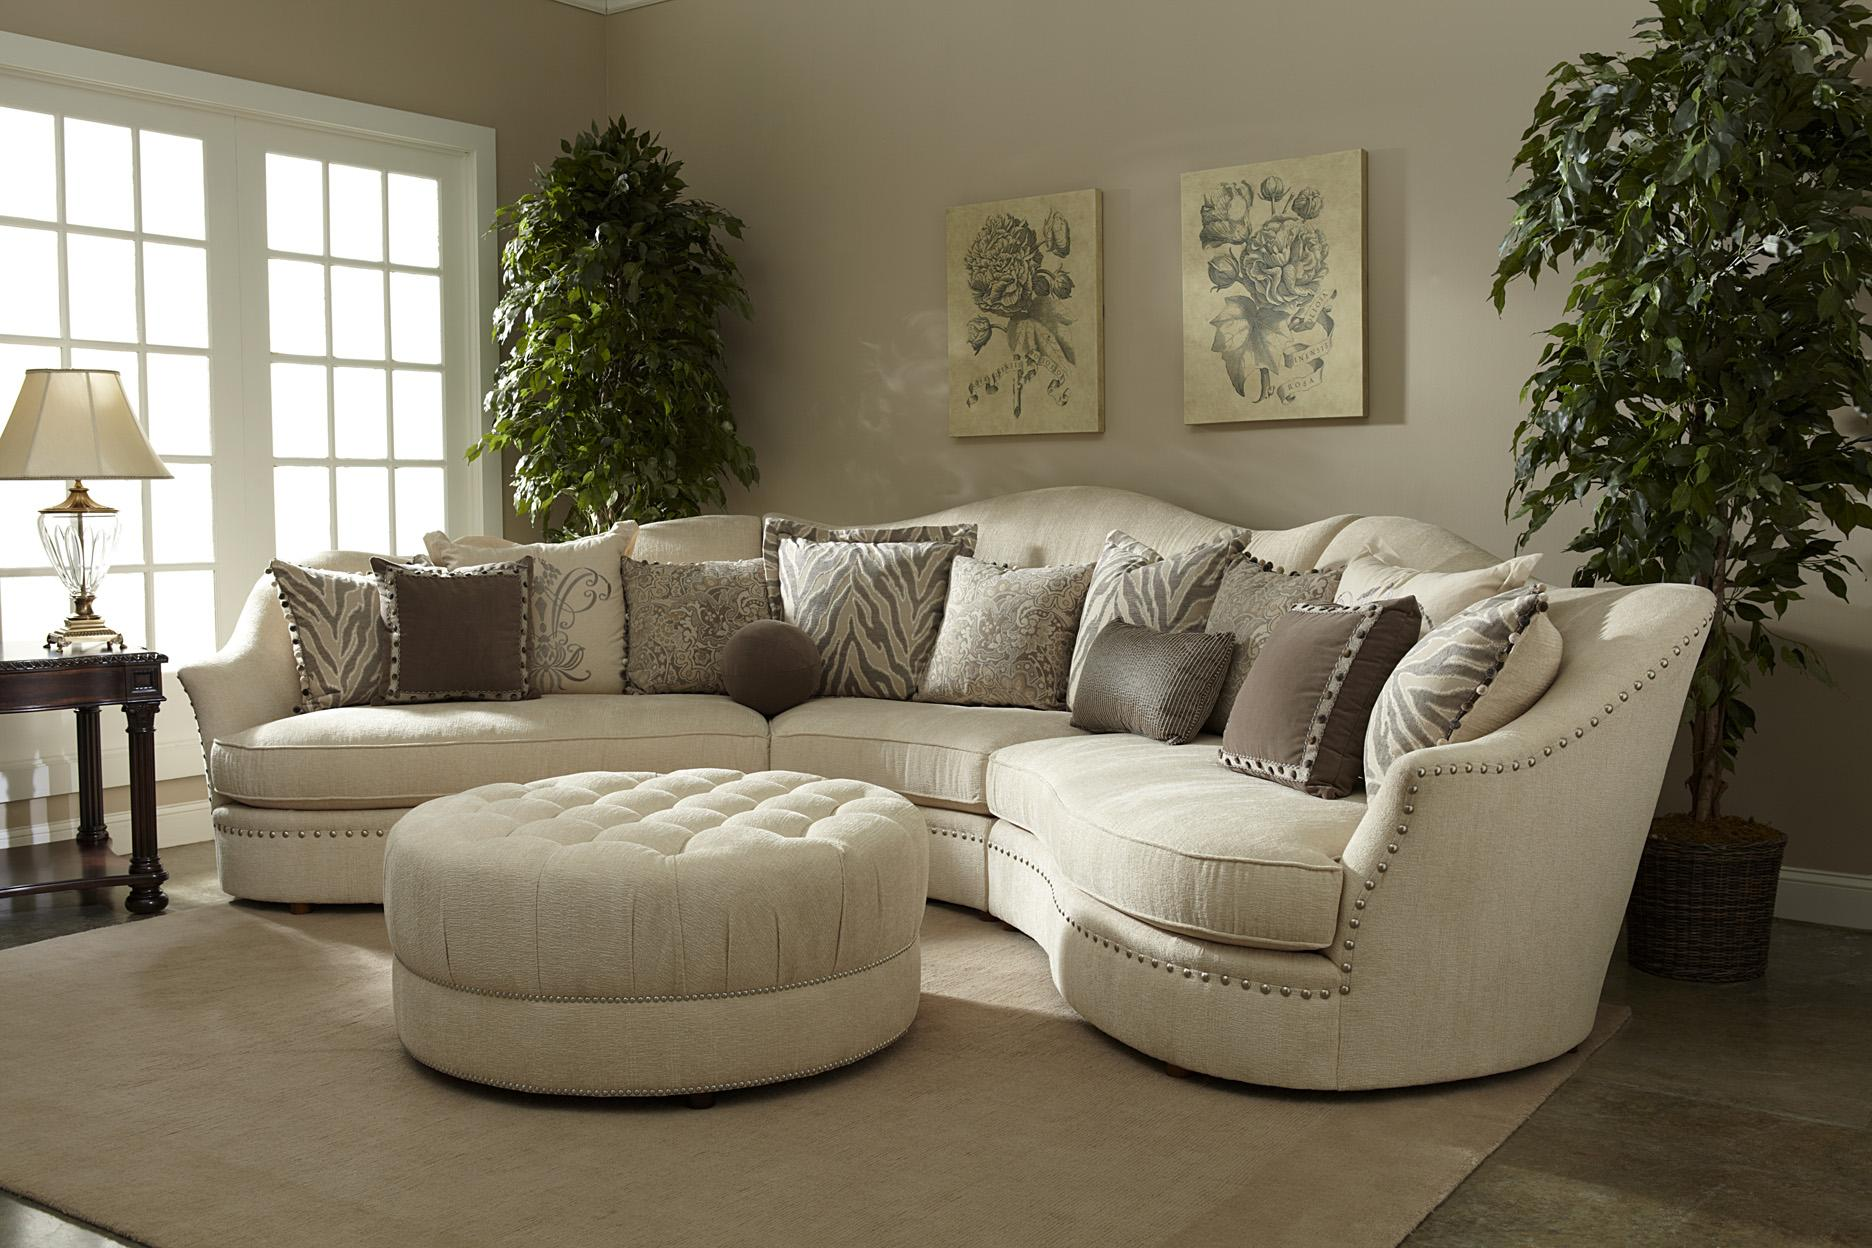 A R T Furniture Inc Cotswold Amanda Ivory Sofa With Camel Back And Down Blend Seat Cushion Boulevard Home Furnishings